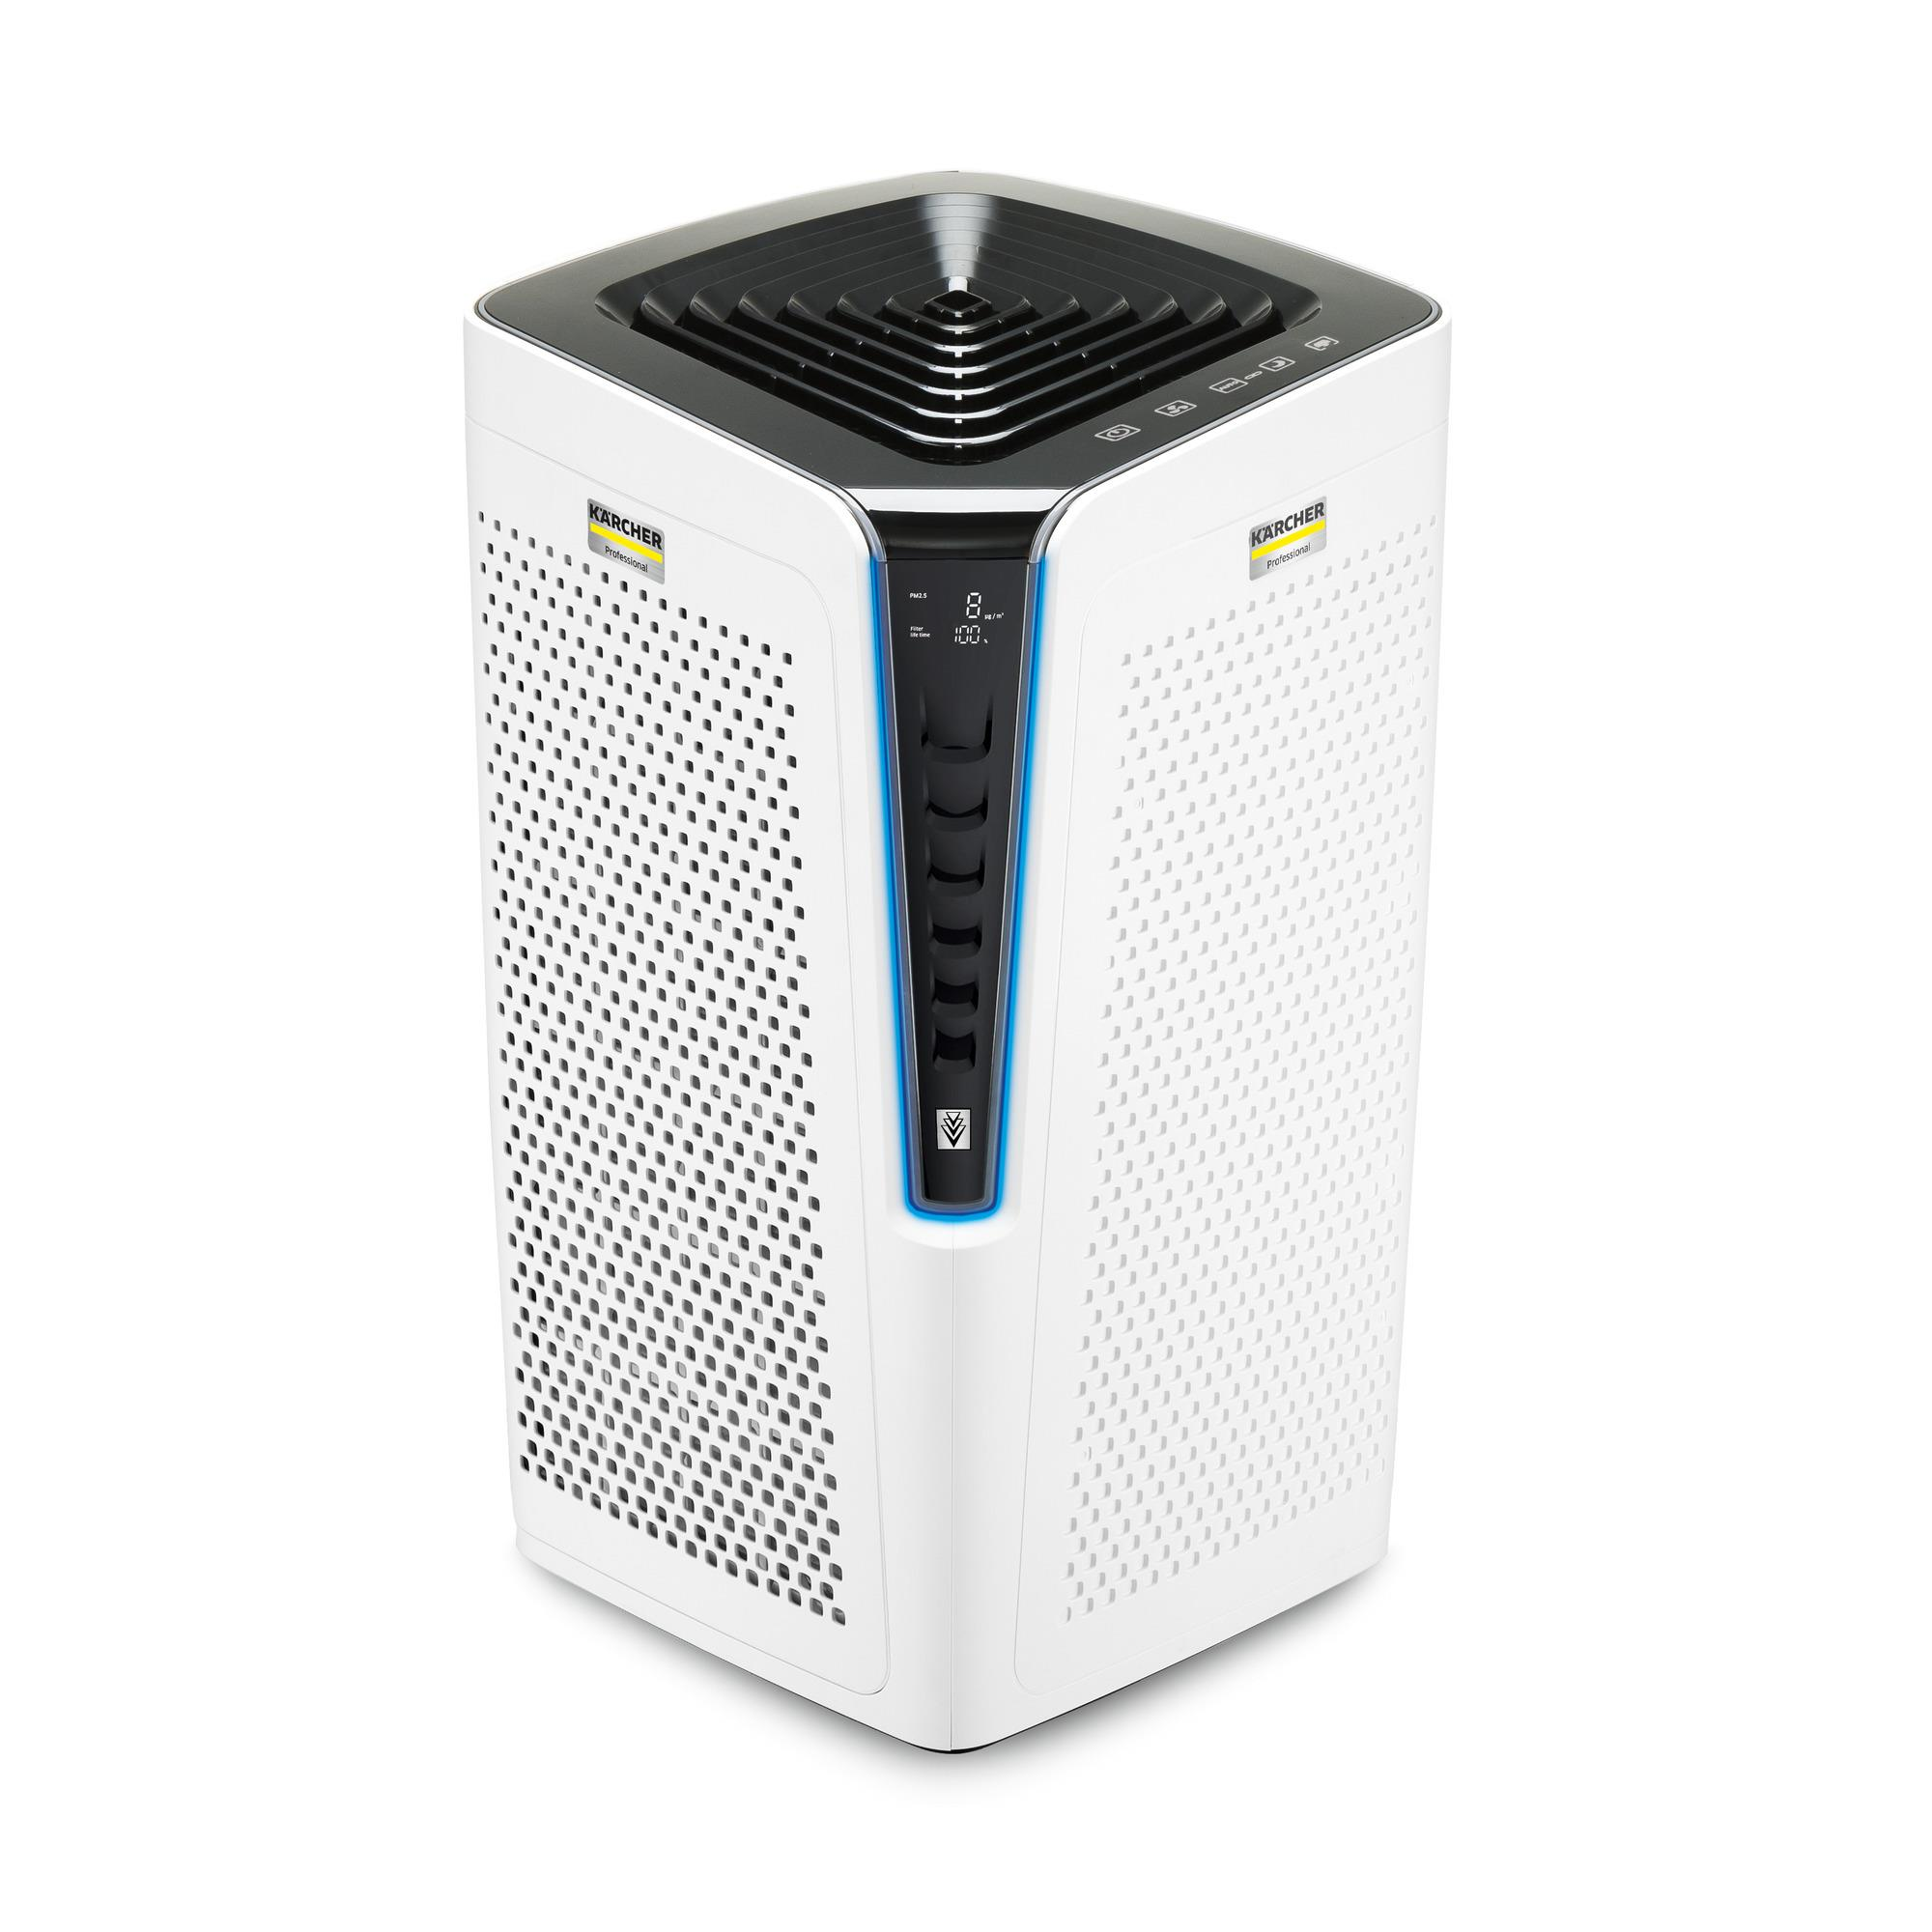 AF 100 Air Purifier 1.024-810.0 KARCHER - KARCHER PREMIER CENTER